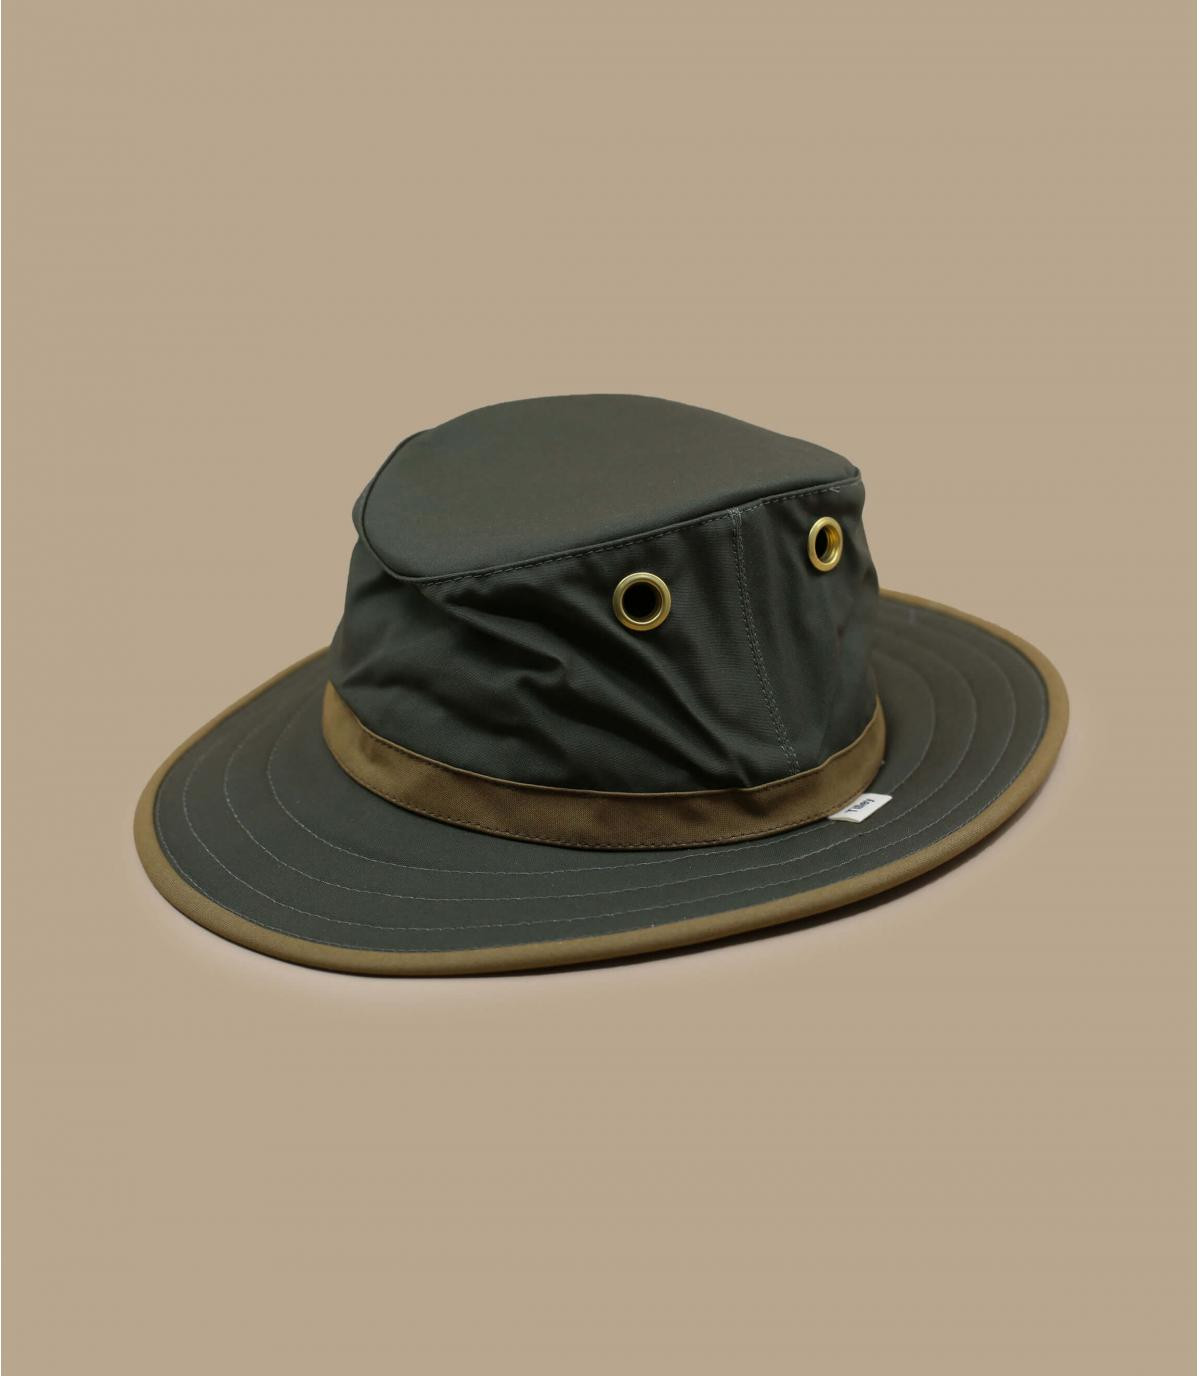 Green waxed cotton hat